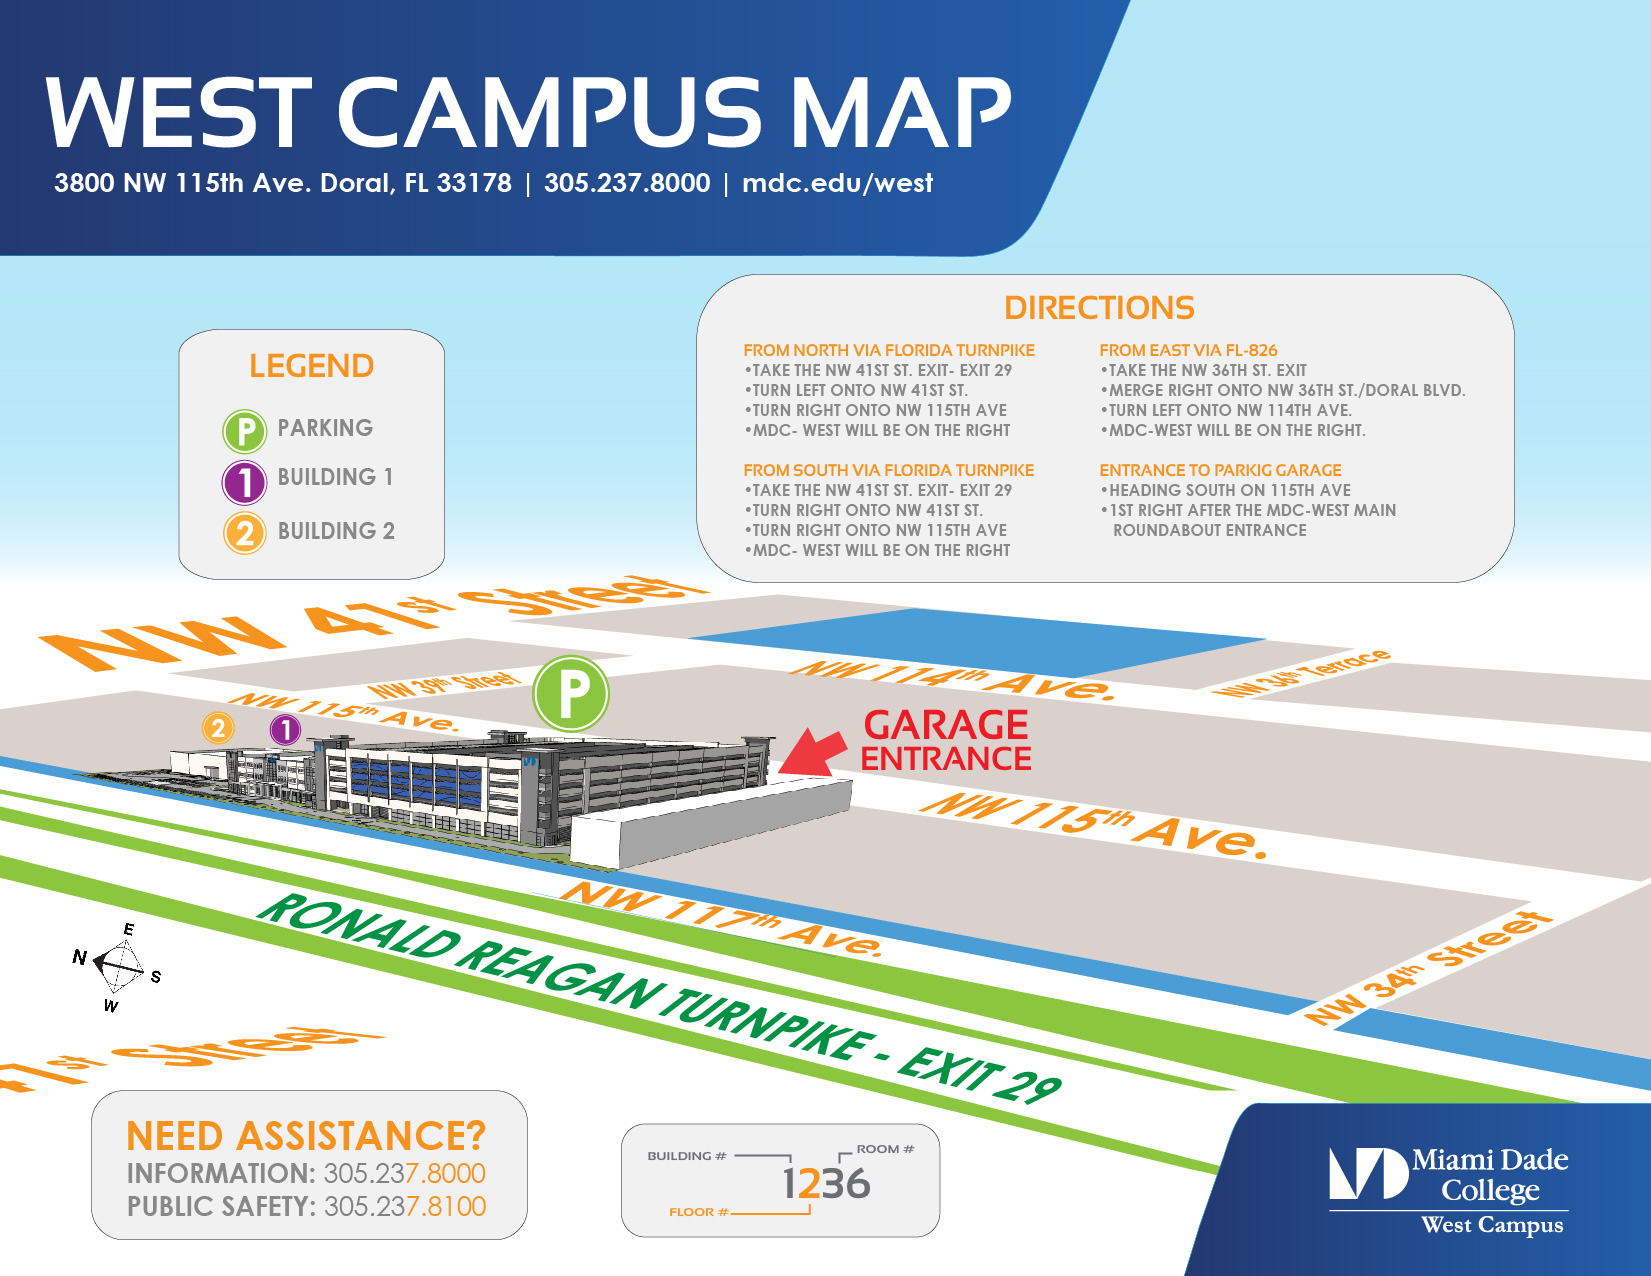 west campus - public safety and emergency preparedness